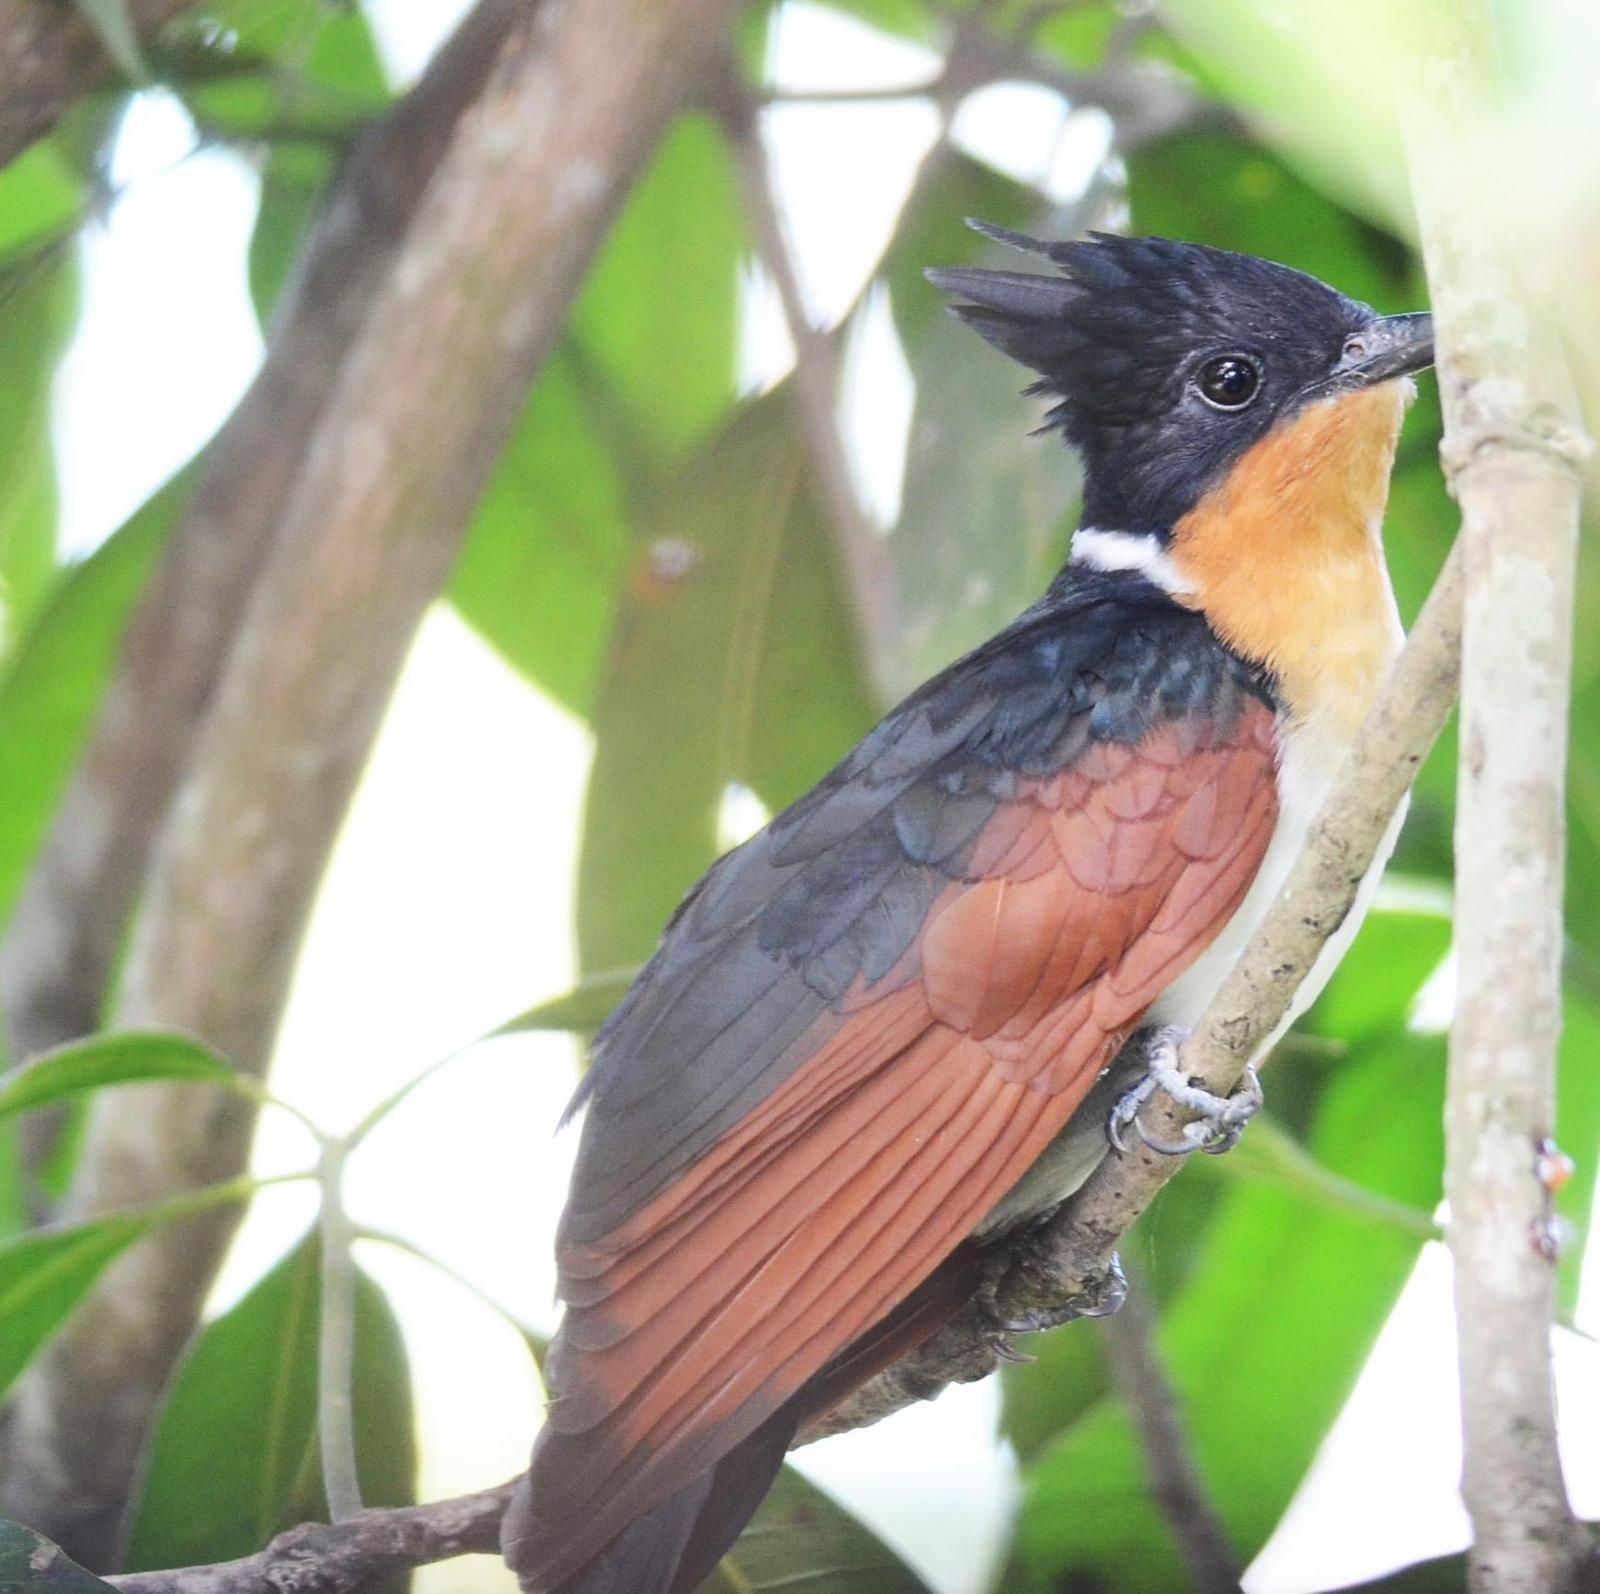 Chestnut-winged Cuckoo Photo by Uthai Cheummarung